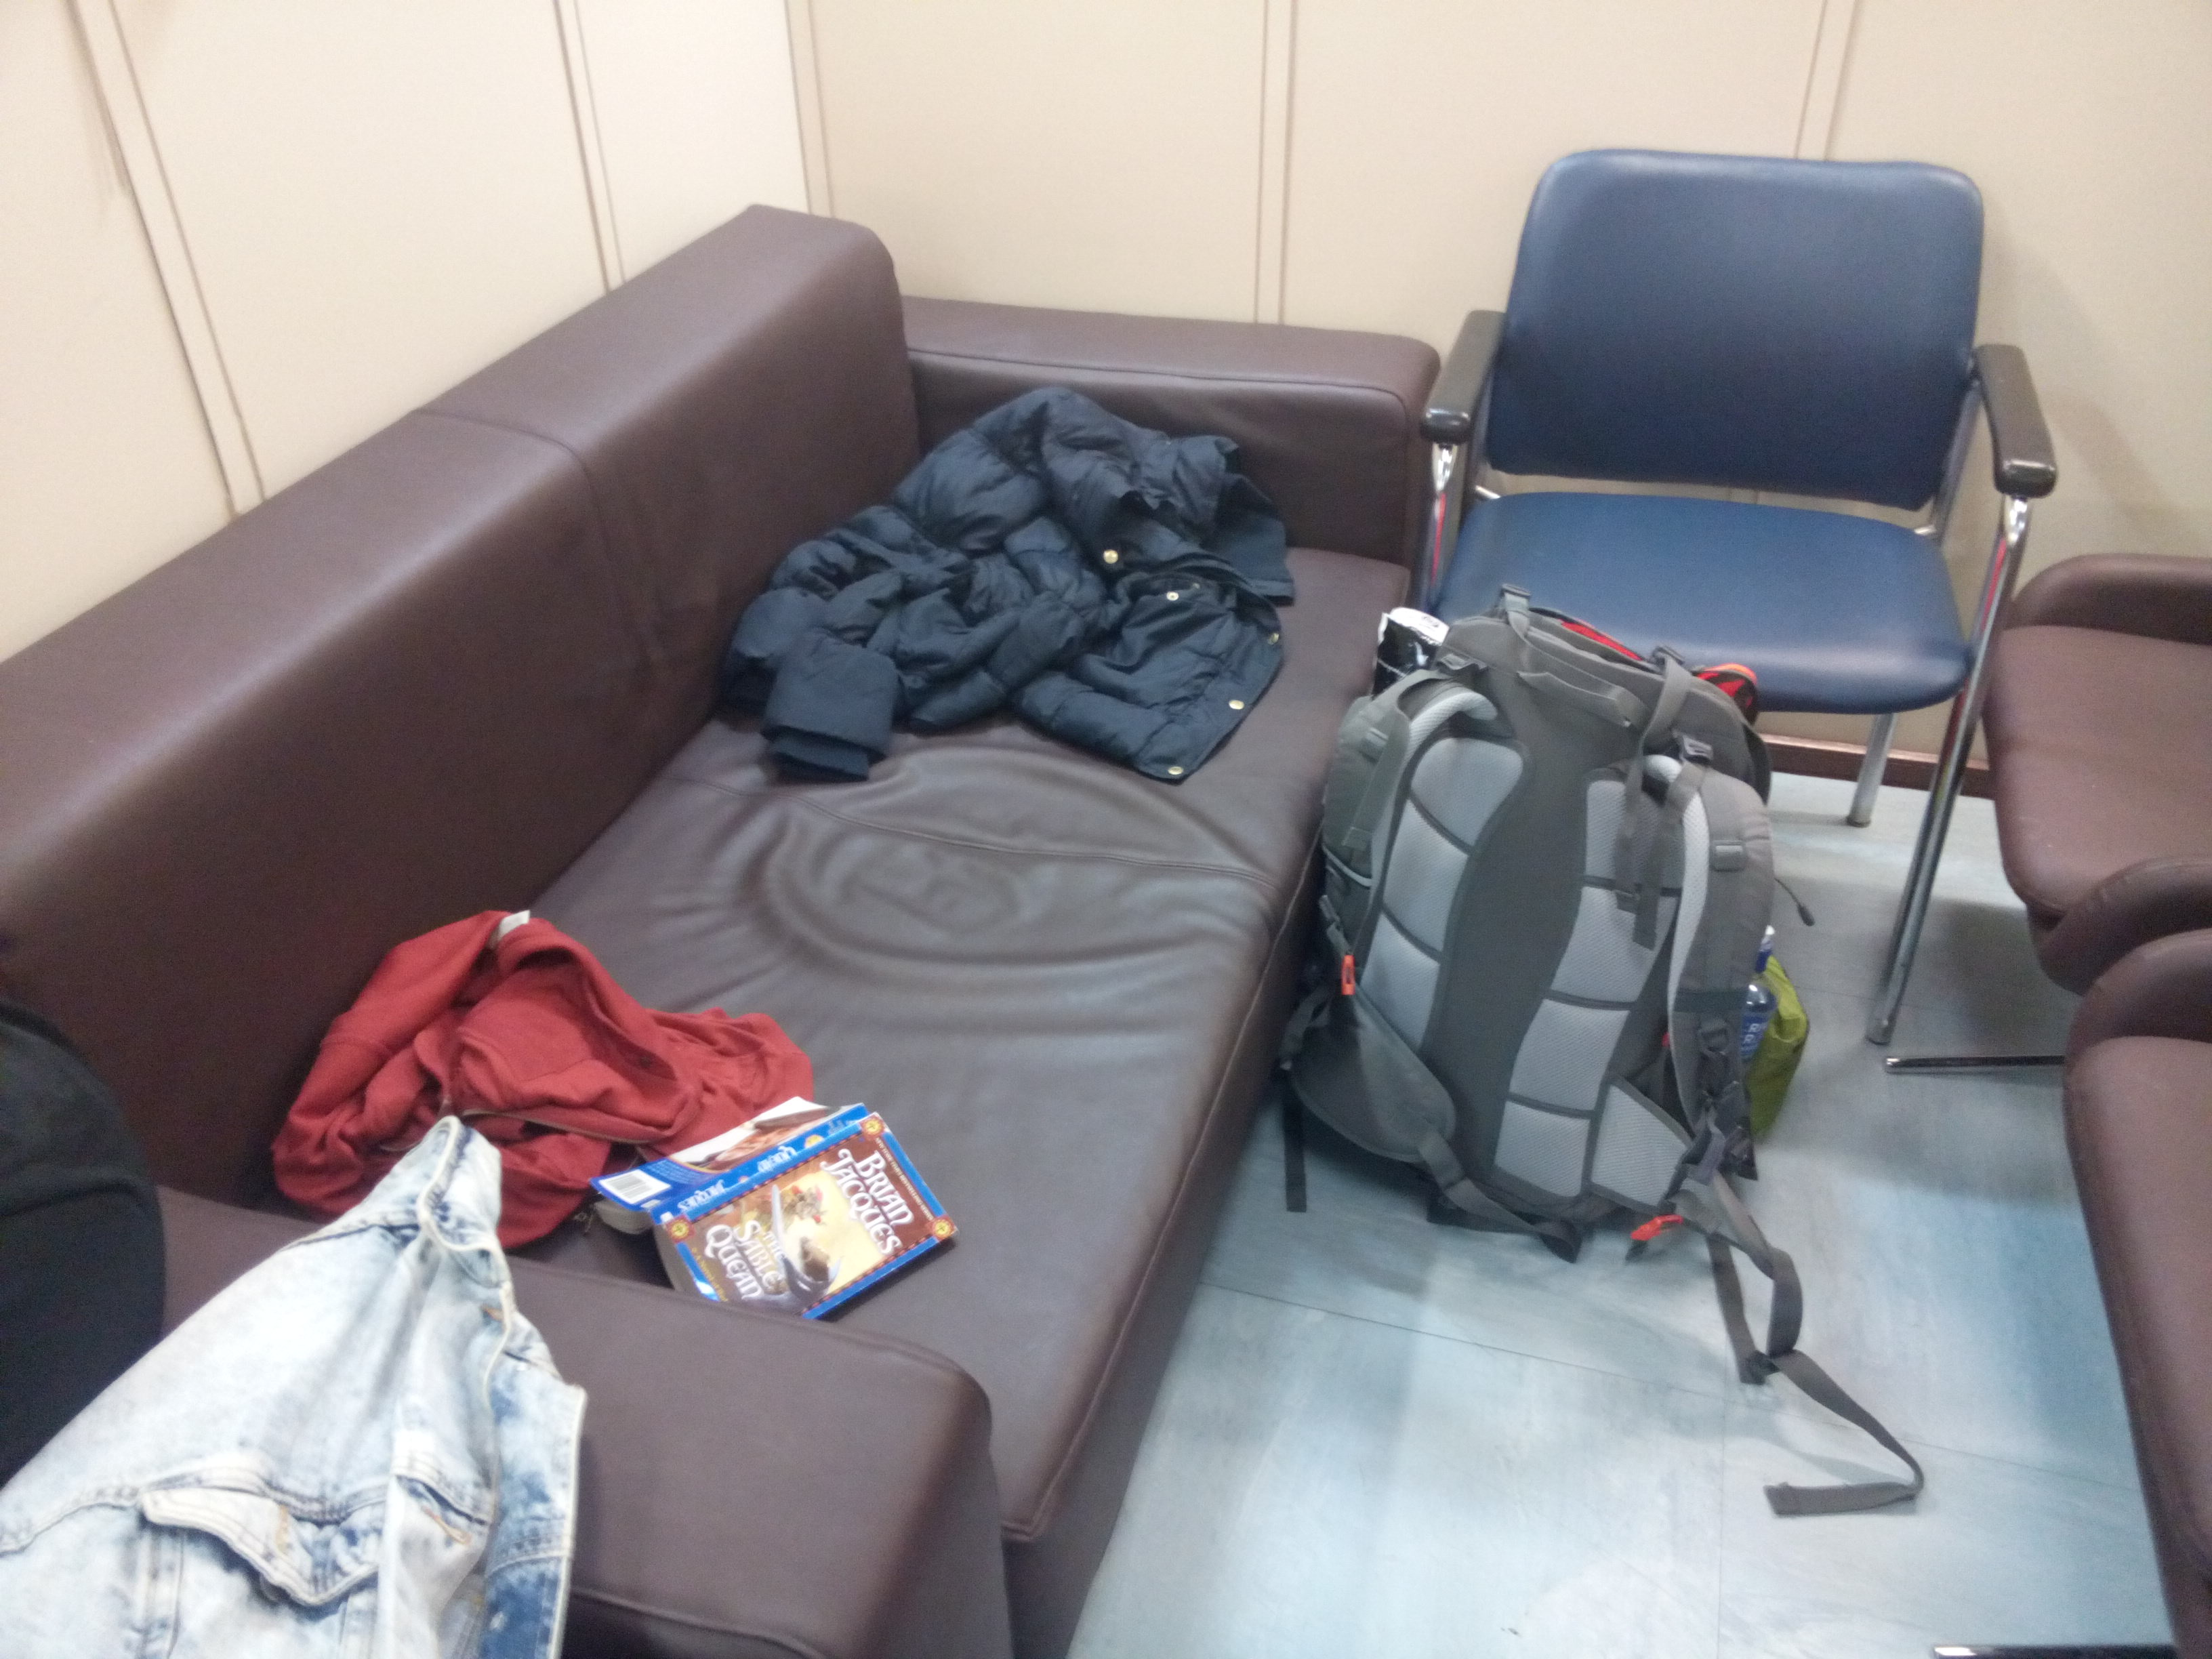 A brown sofa with blue and red coats on; a backpack on the floor by a chair